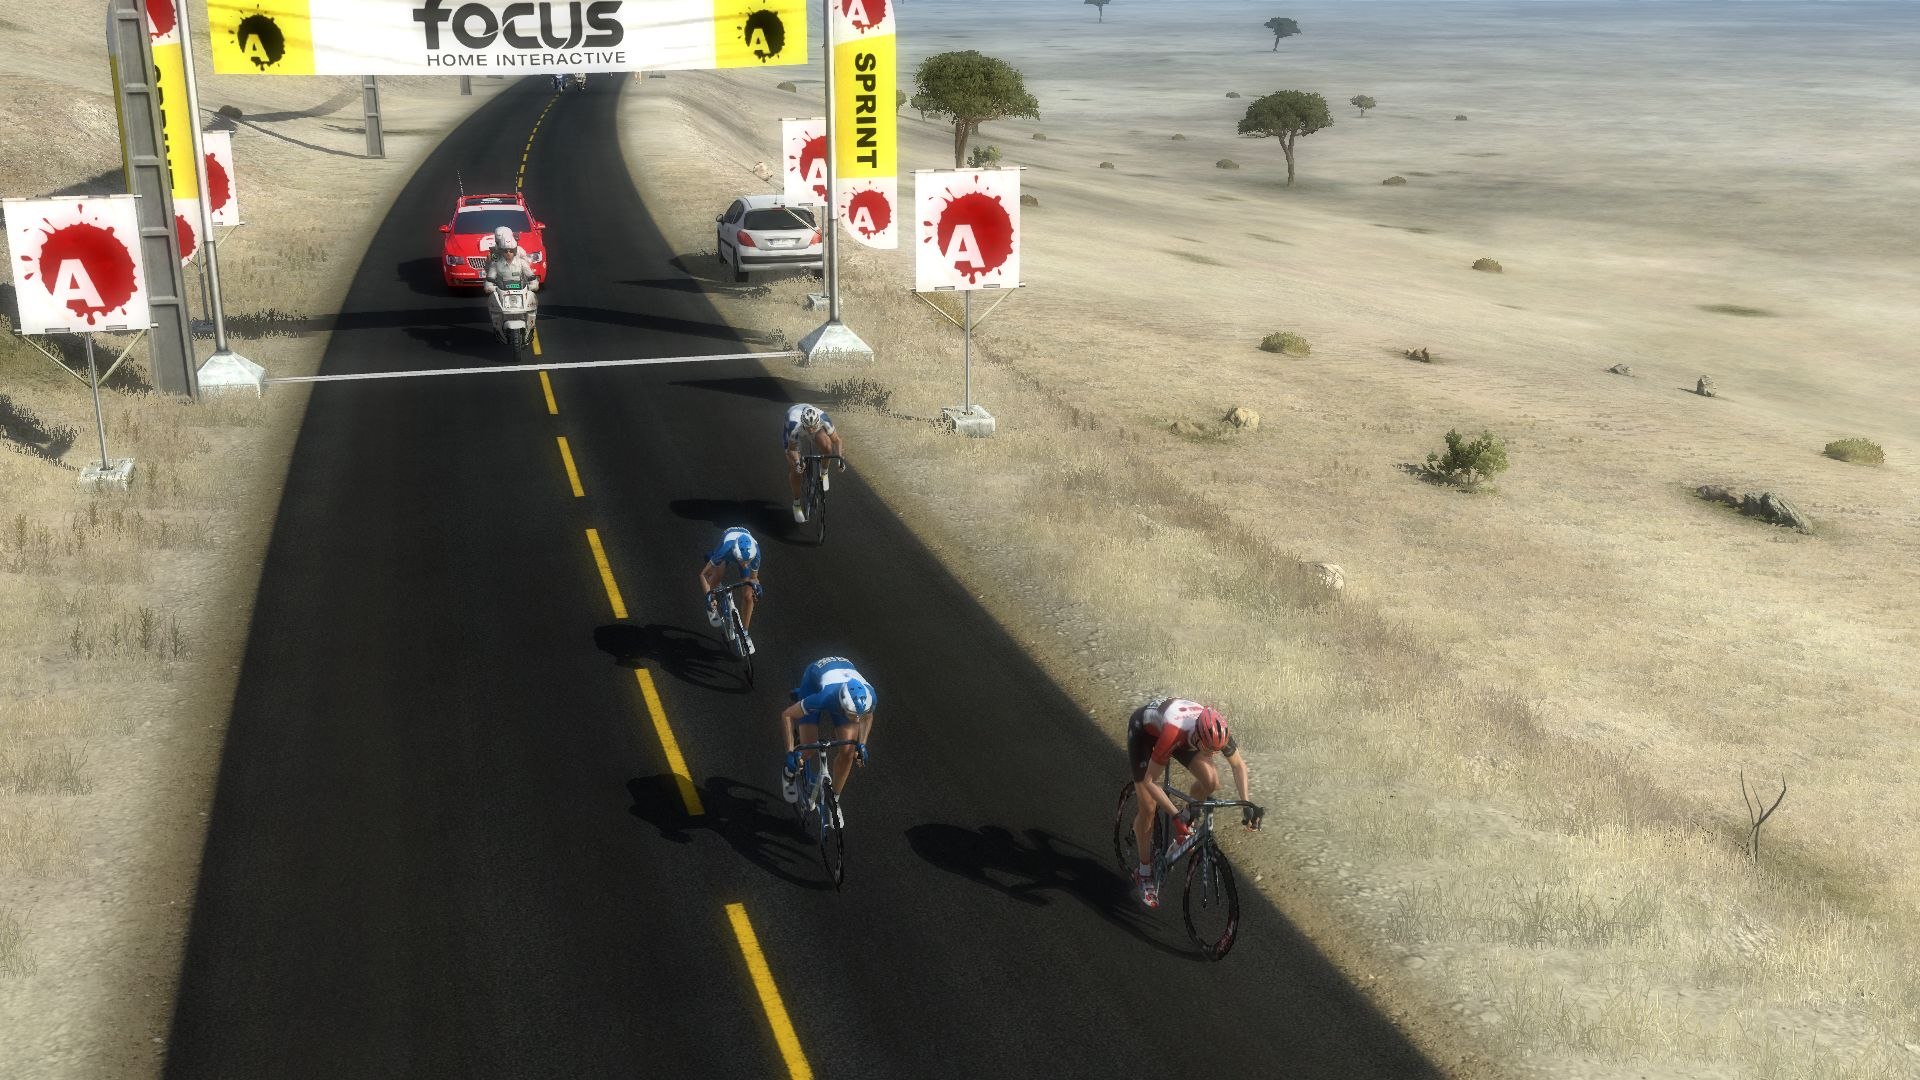 pcmdaily.com/images/mg/2019/Races/C2HC/Eritrea/TOES1%201.jpg